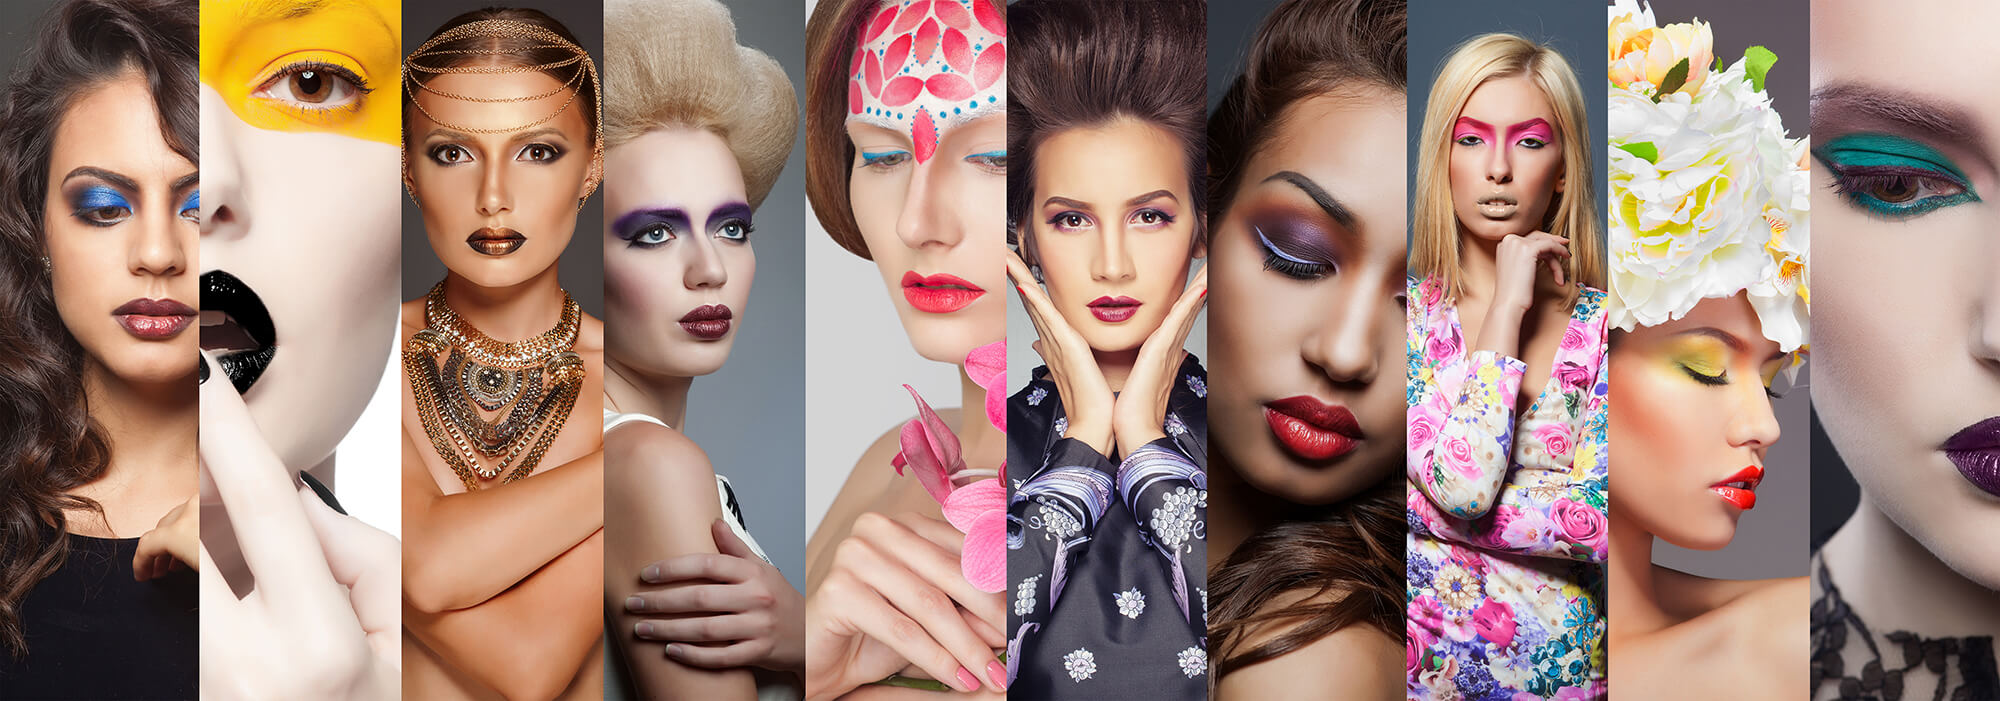 A panel of images showing different hairstyles and make-up